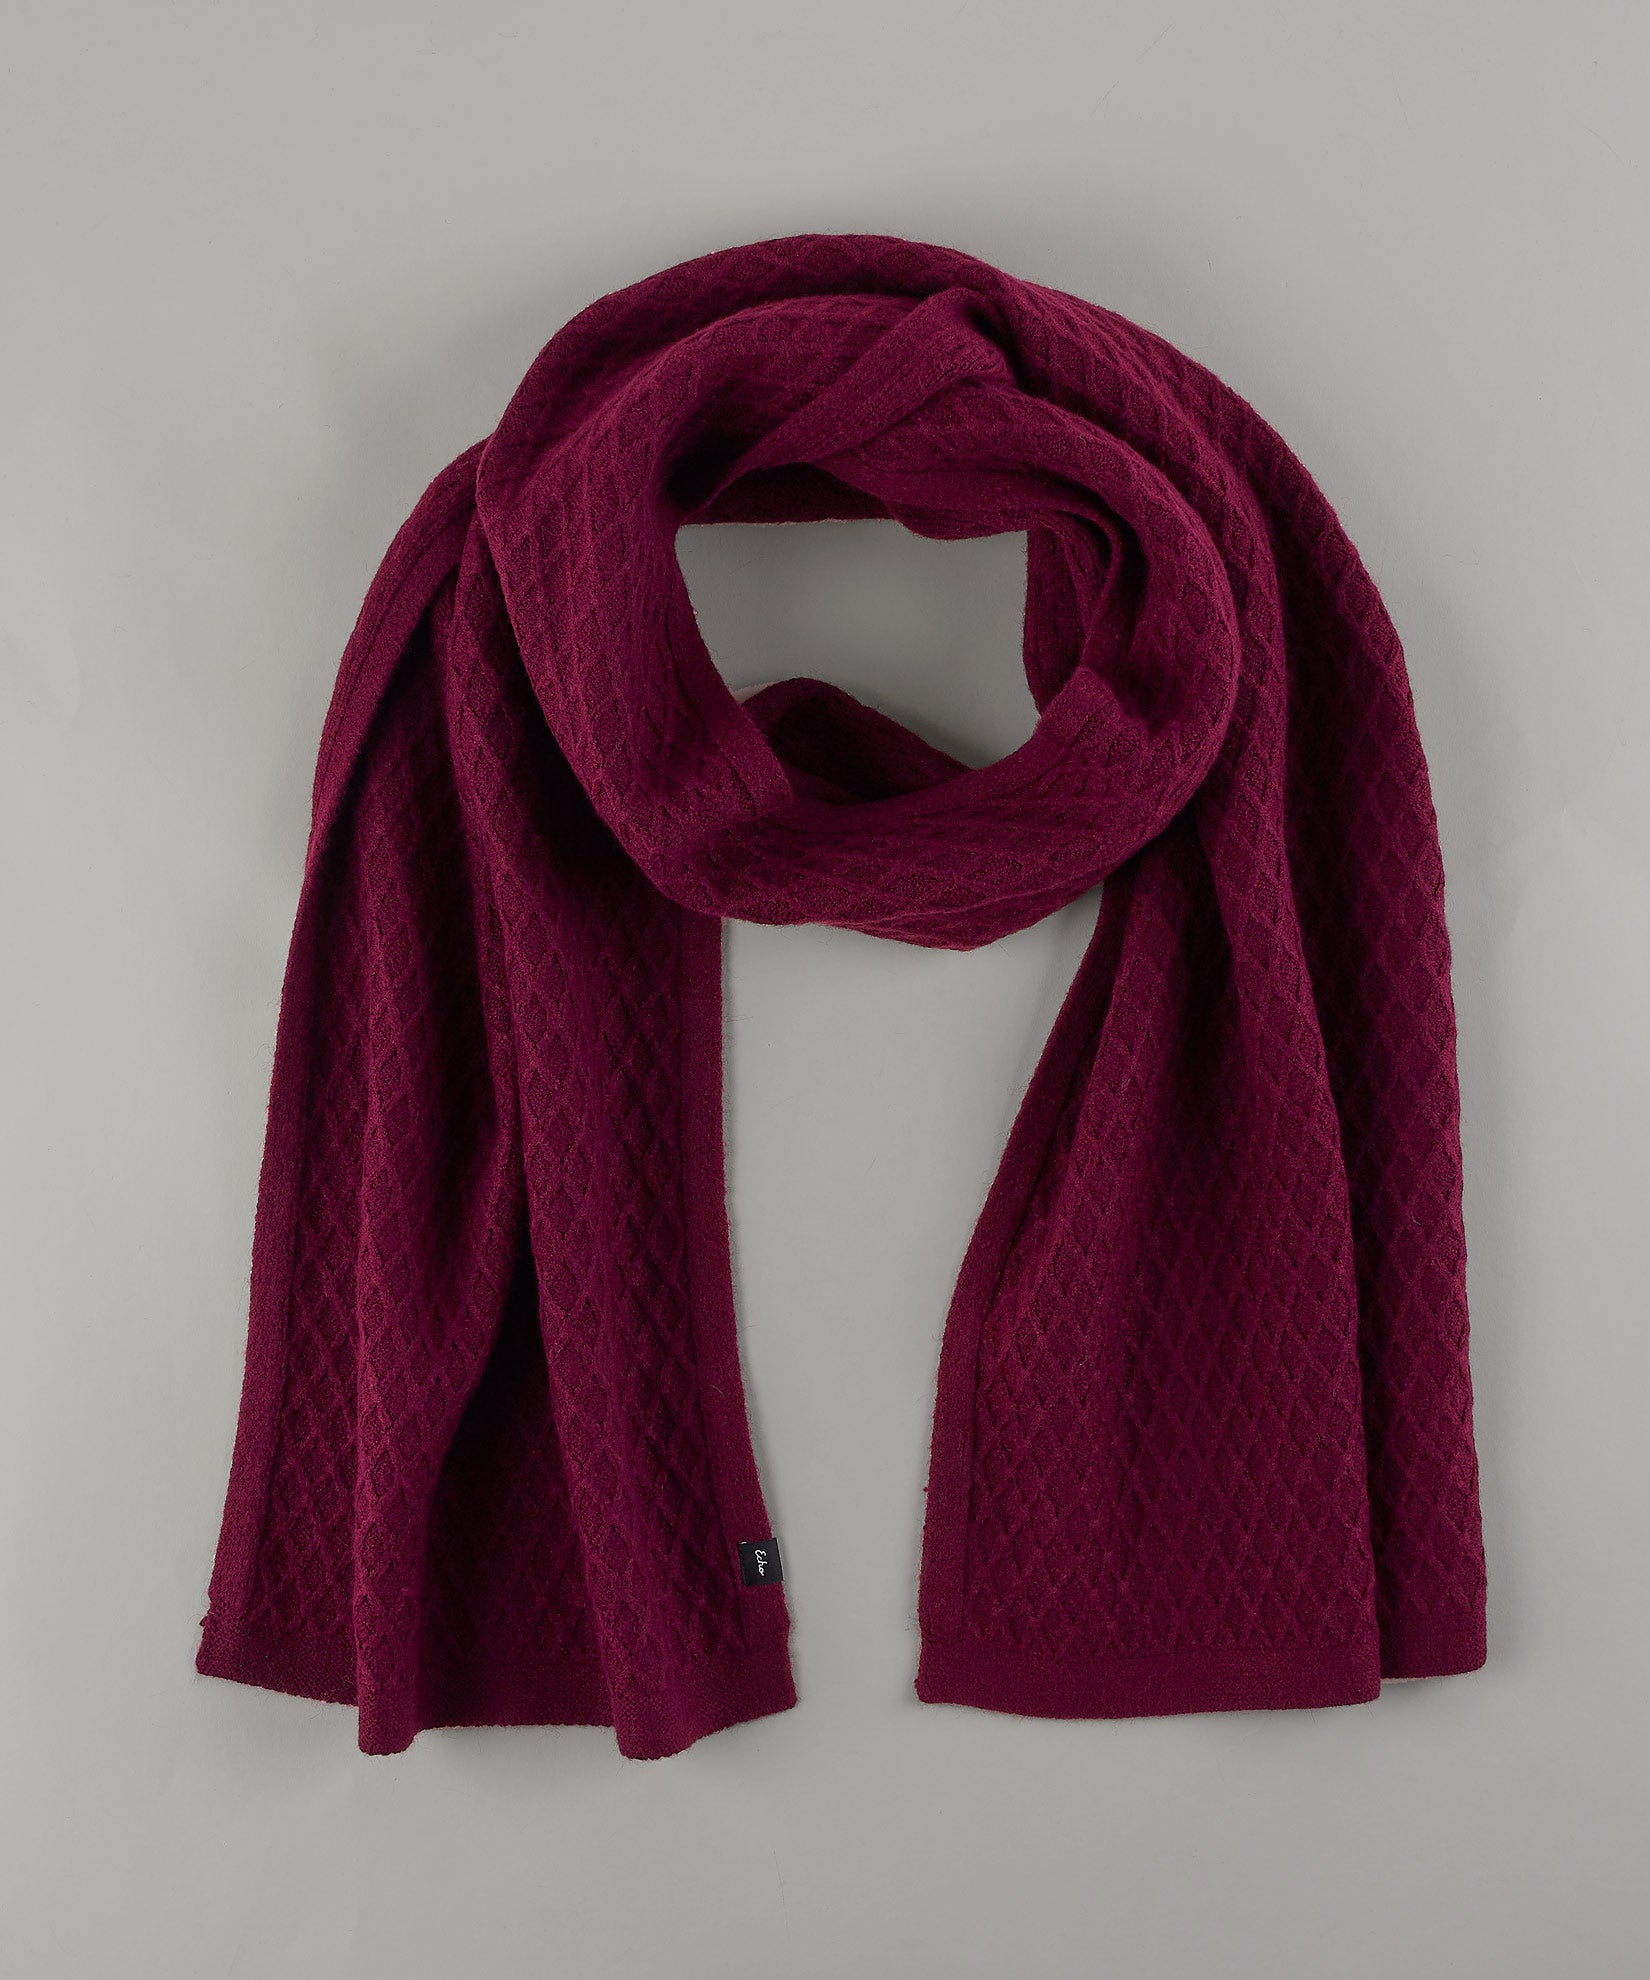 Boysenberry - Diamond Textured Muffler